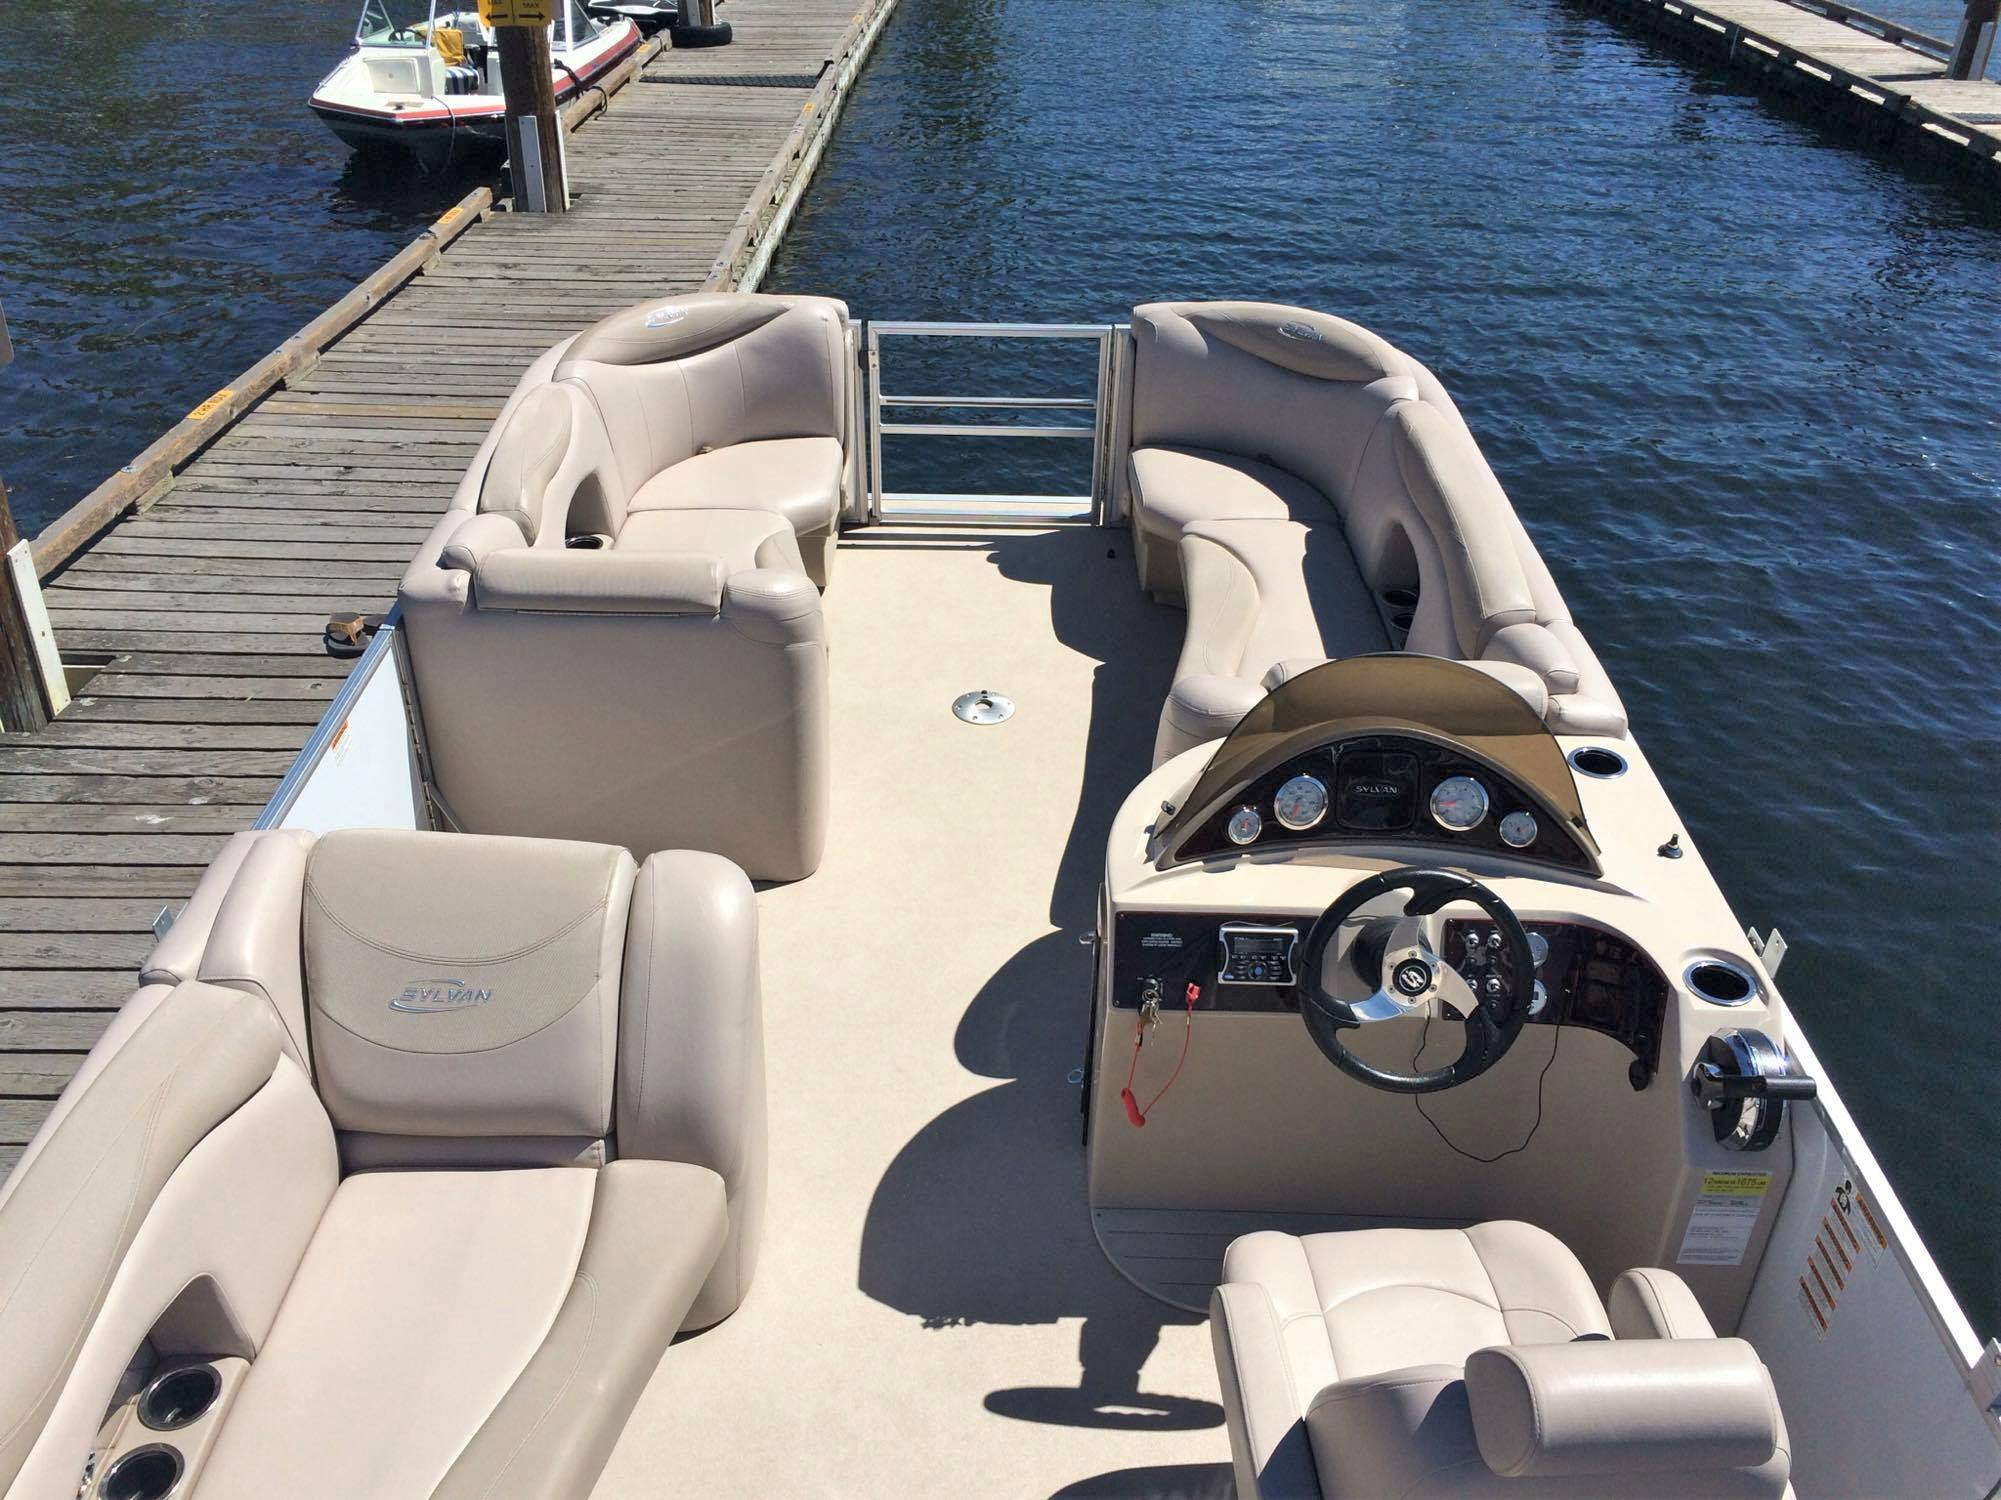 Pontoon-boat-rental-1